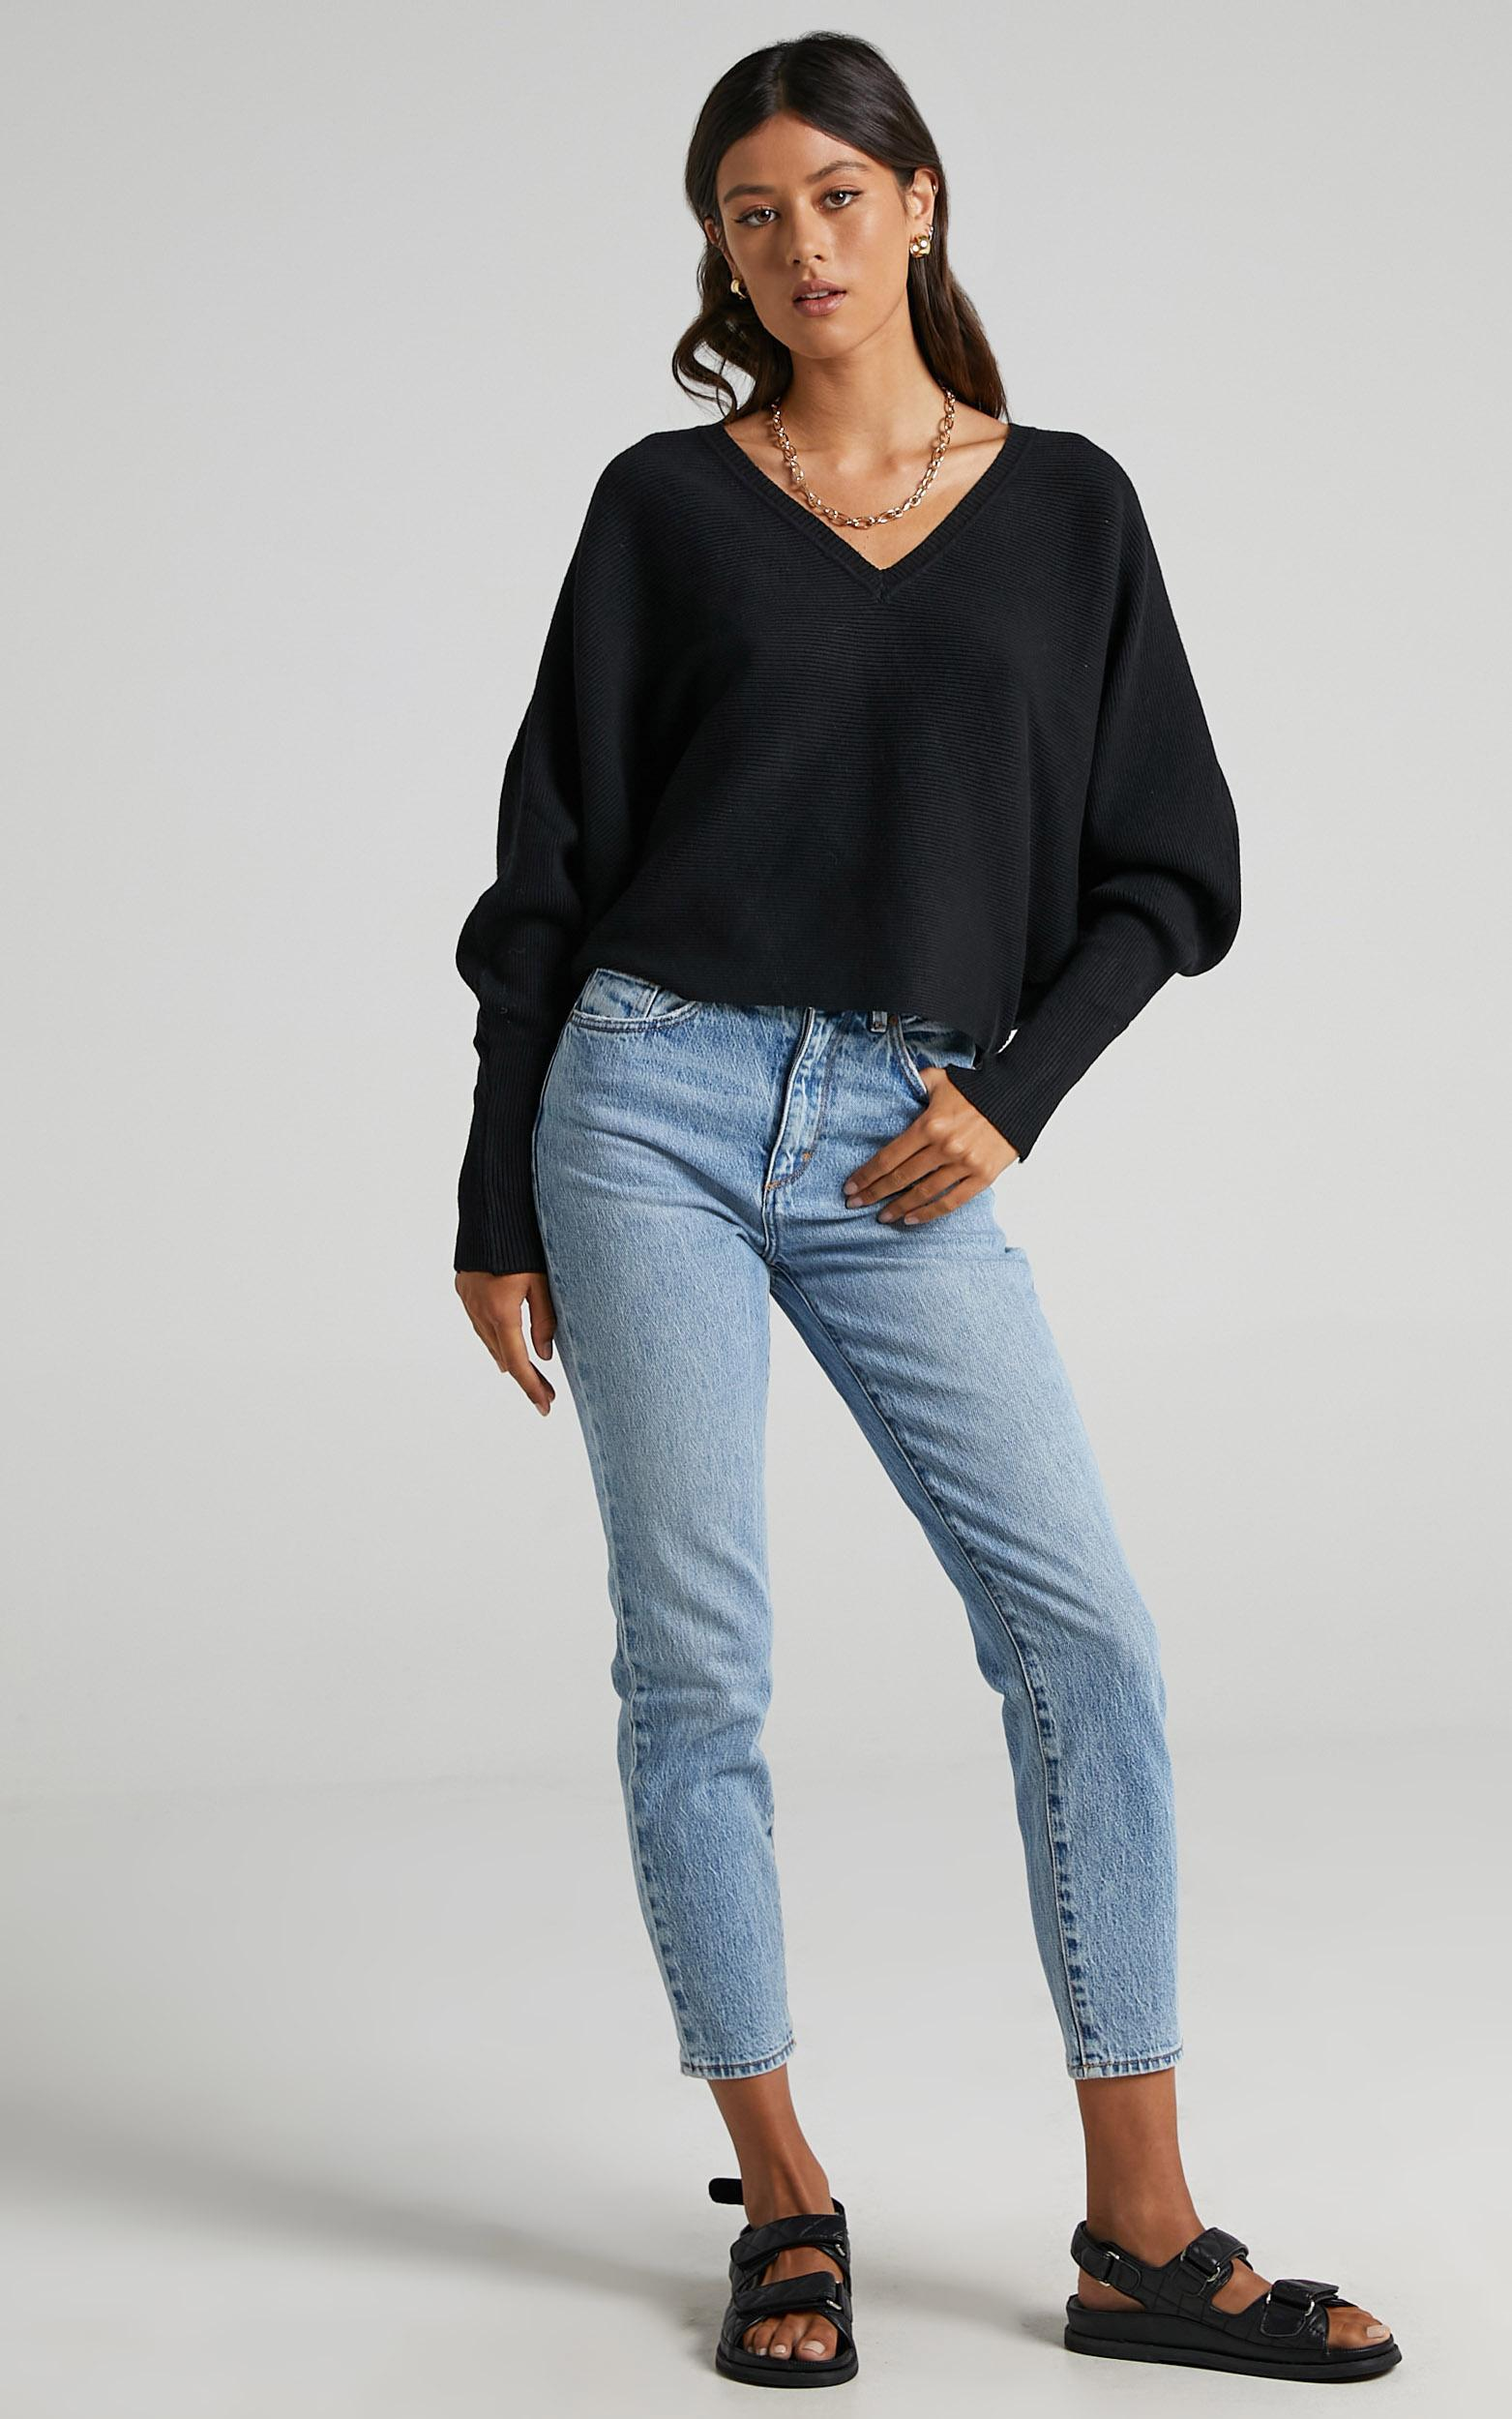 Winning At Life Knit Sweater in Black - 14, BLK1, hi-res image number null